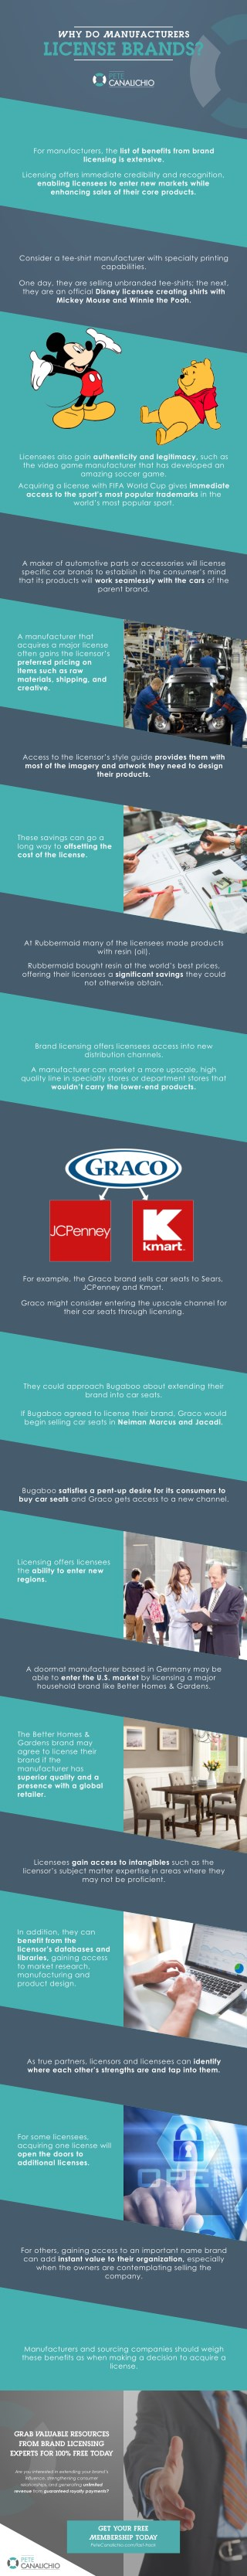 Why Do Manufacturers License Brands | Brand Strategy | Branding